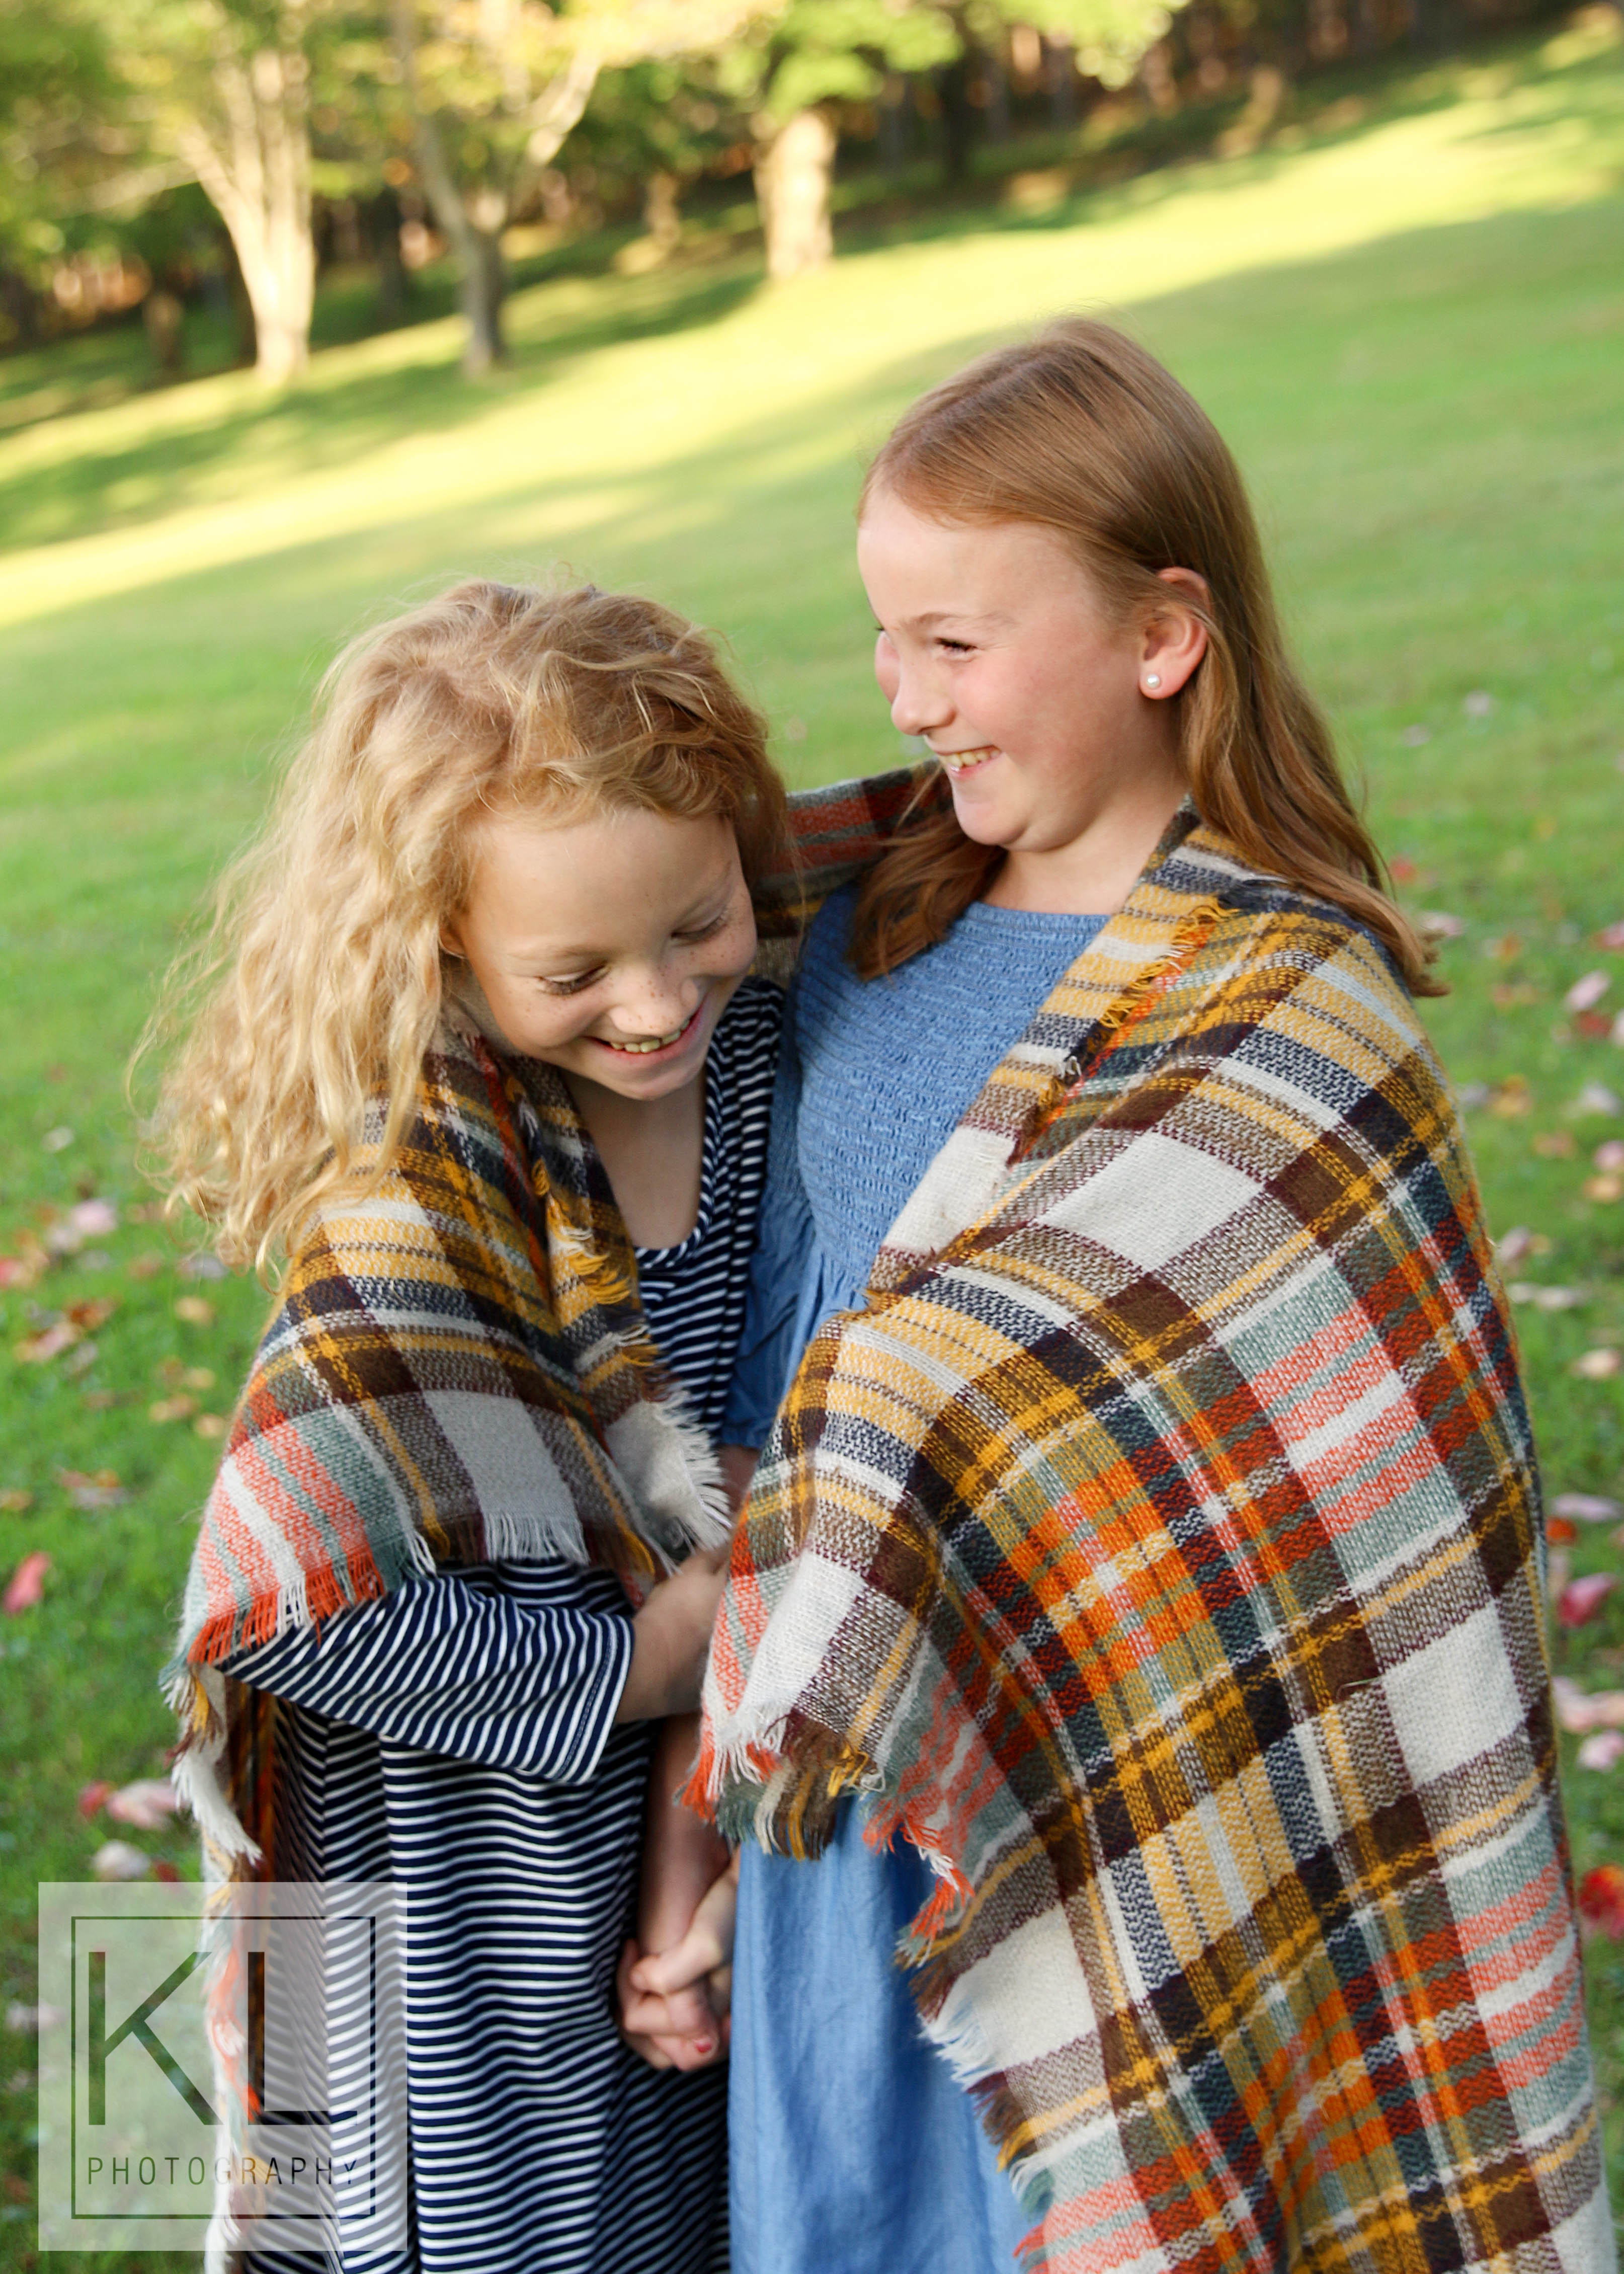 Family photographer near me, Binghamton family photographer, Endicott Family Photographer, Vestal Family photographer, Studio family pictures, outdoor family pictures, outdoor family photographer, photographer good with kids, children photographer, kids photos, kids photos near me, best photographer near me, best family photographer near me, photographer good with kids,